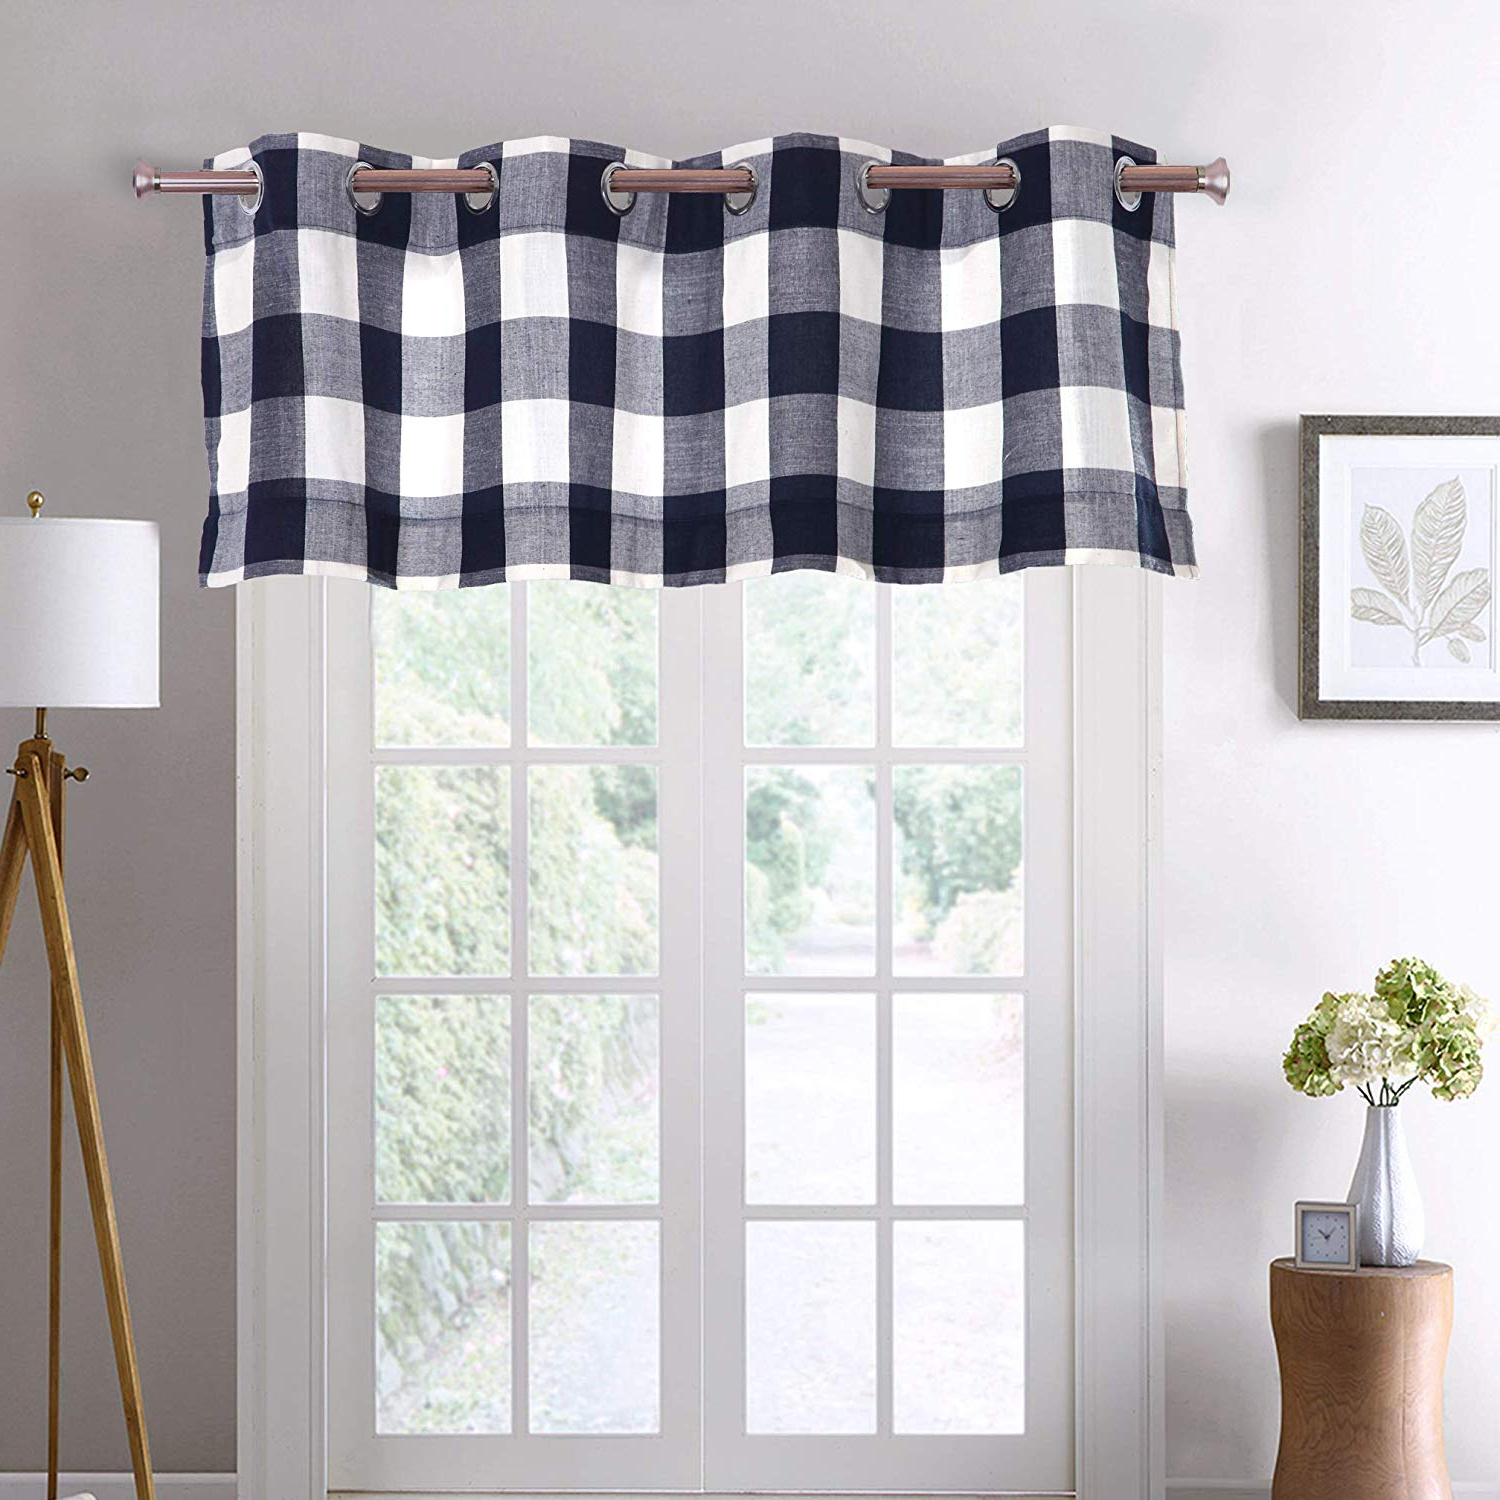 "Widely Used Grandin Curtain Valances In Black Pertaining To Decotex Courtyard Checkered Grommet Window Curtain Treatment Panel Drapes Or Valance (1 Valance 53"" X 18"", Black/beige) (View 5 of 20)"